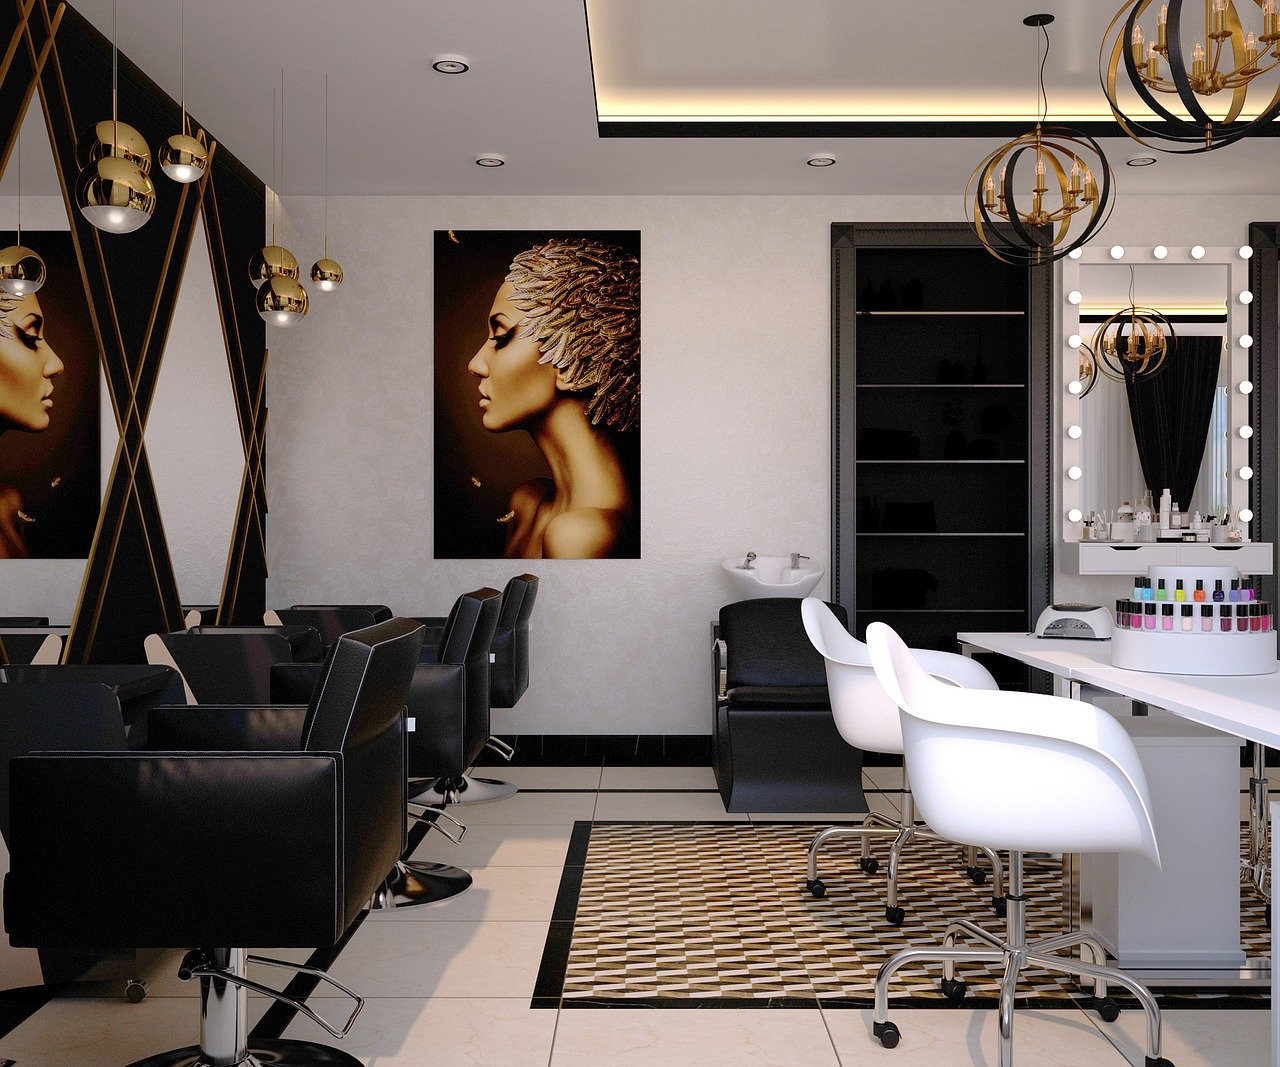 beauty salon, barber, nail salon